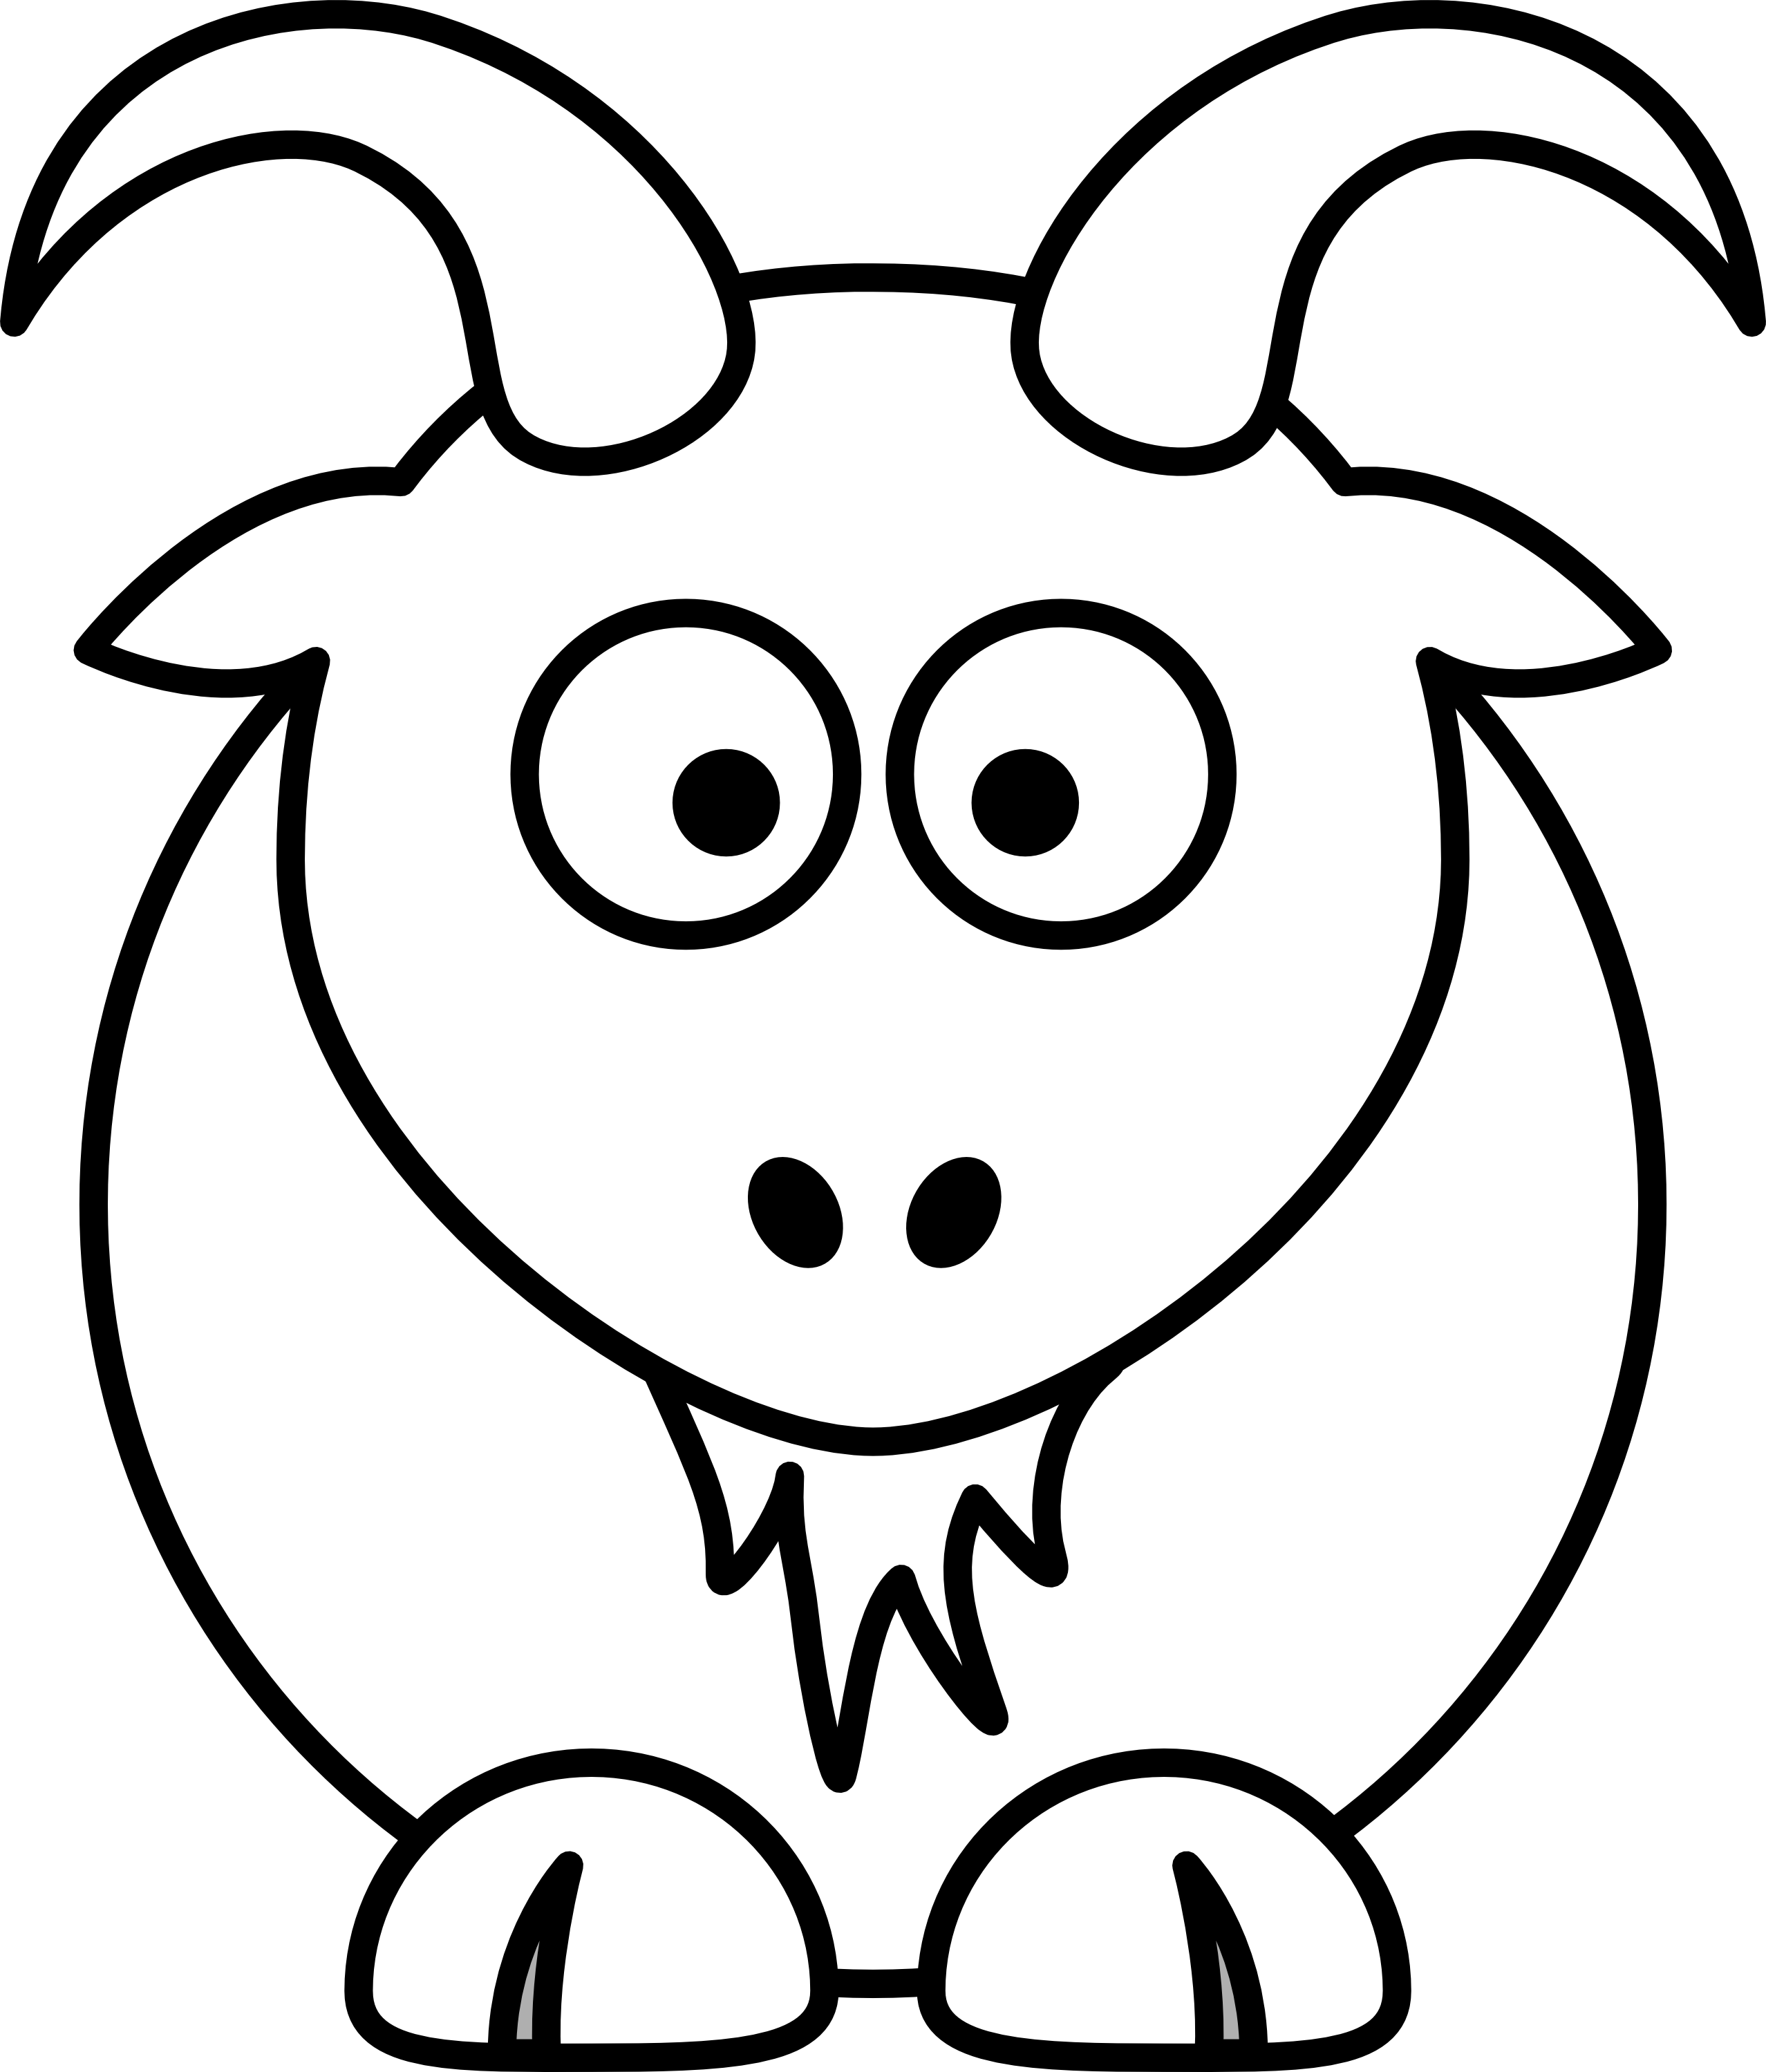 Straight Face Clipart Black And White Clipart Panda Free Clipart